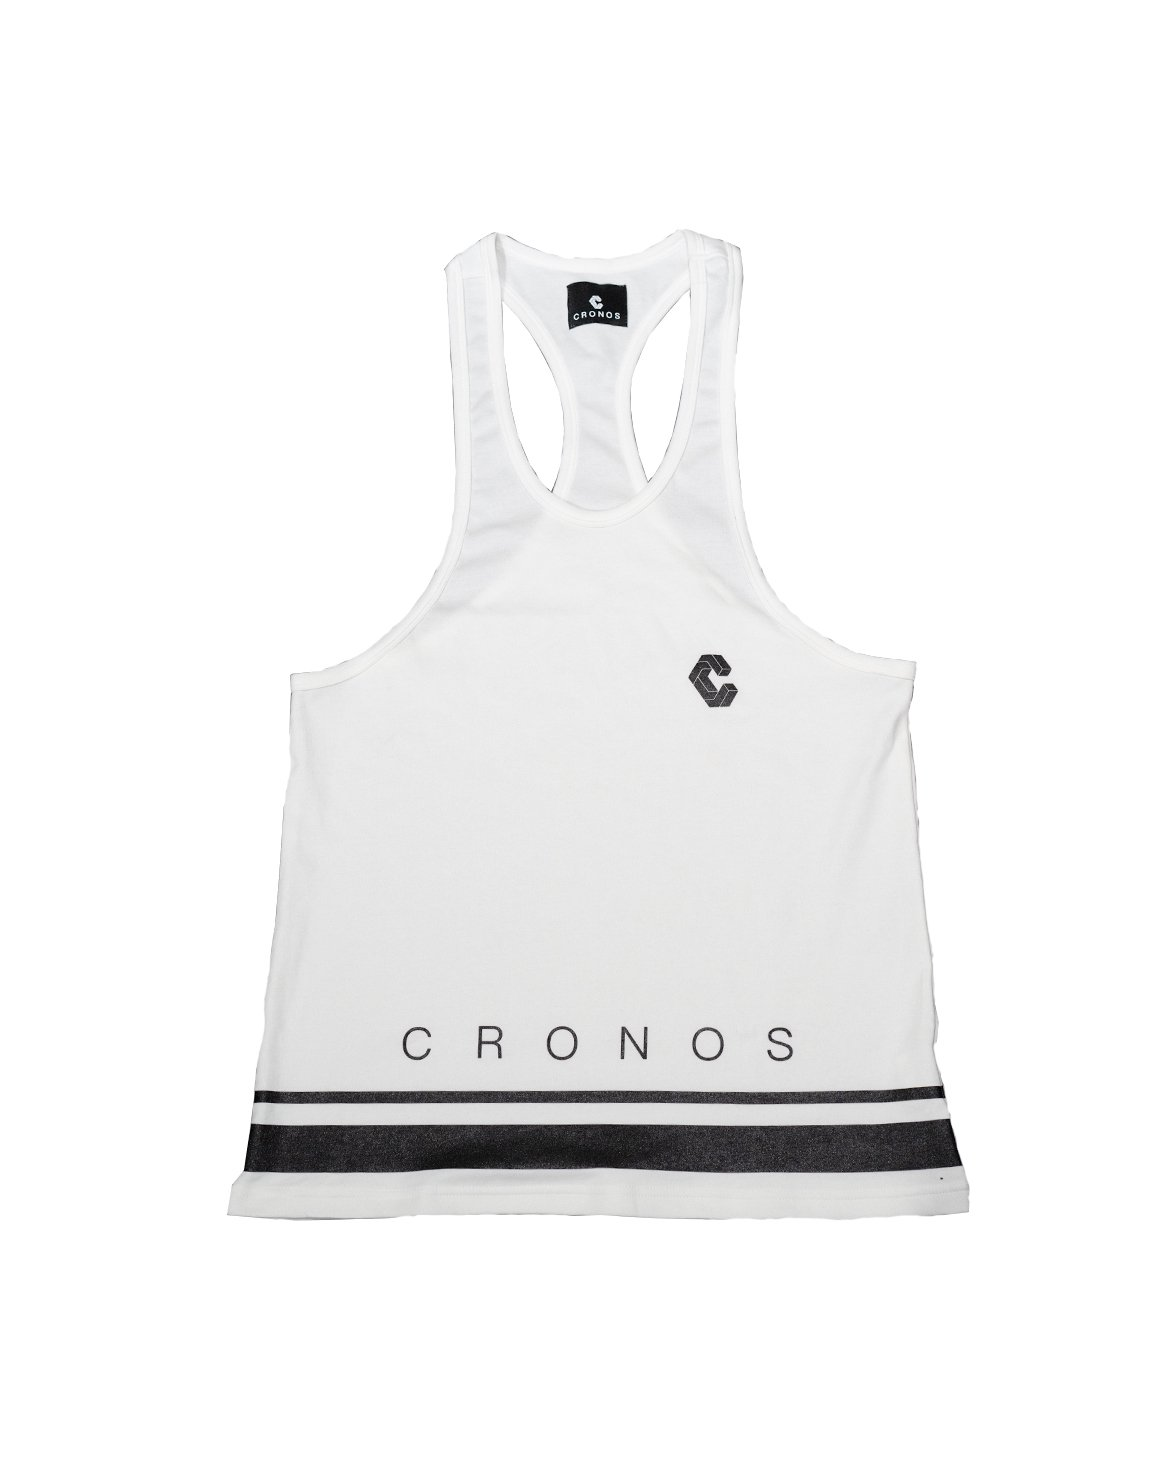 <img class='new_mark_img1' src='https://img.shop-pro.jp/img/new/icons1.gif' style='border:none;display:inline;margin:0px;padding:0px;width:auto;' />CRONOS HEM TWO LINE TANK TOP 【WHITE】